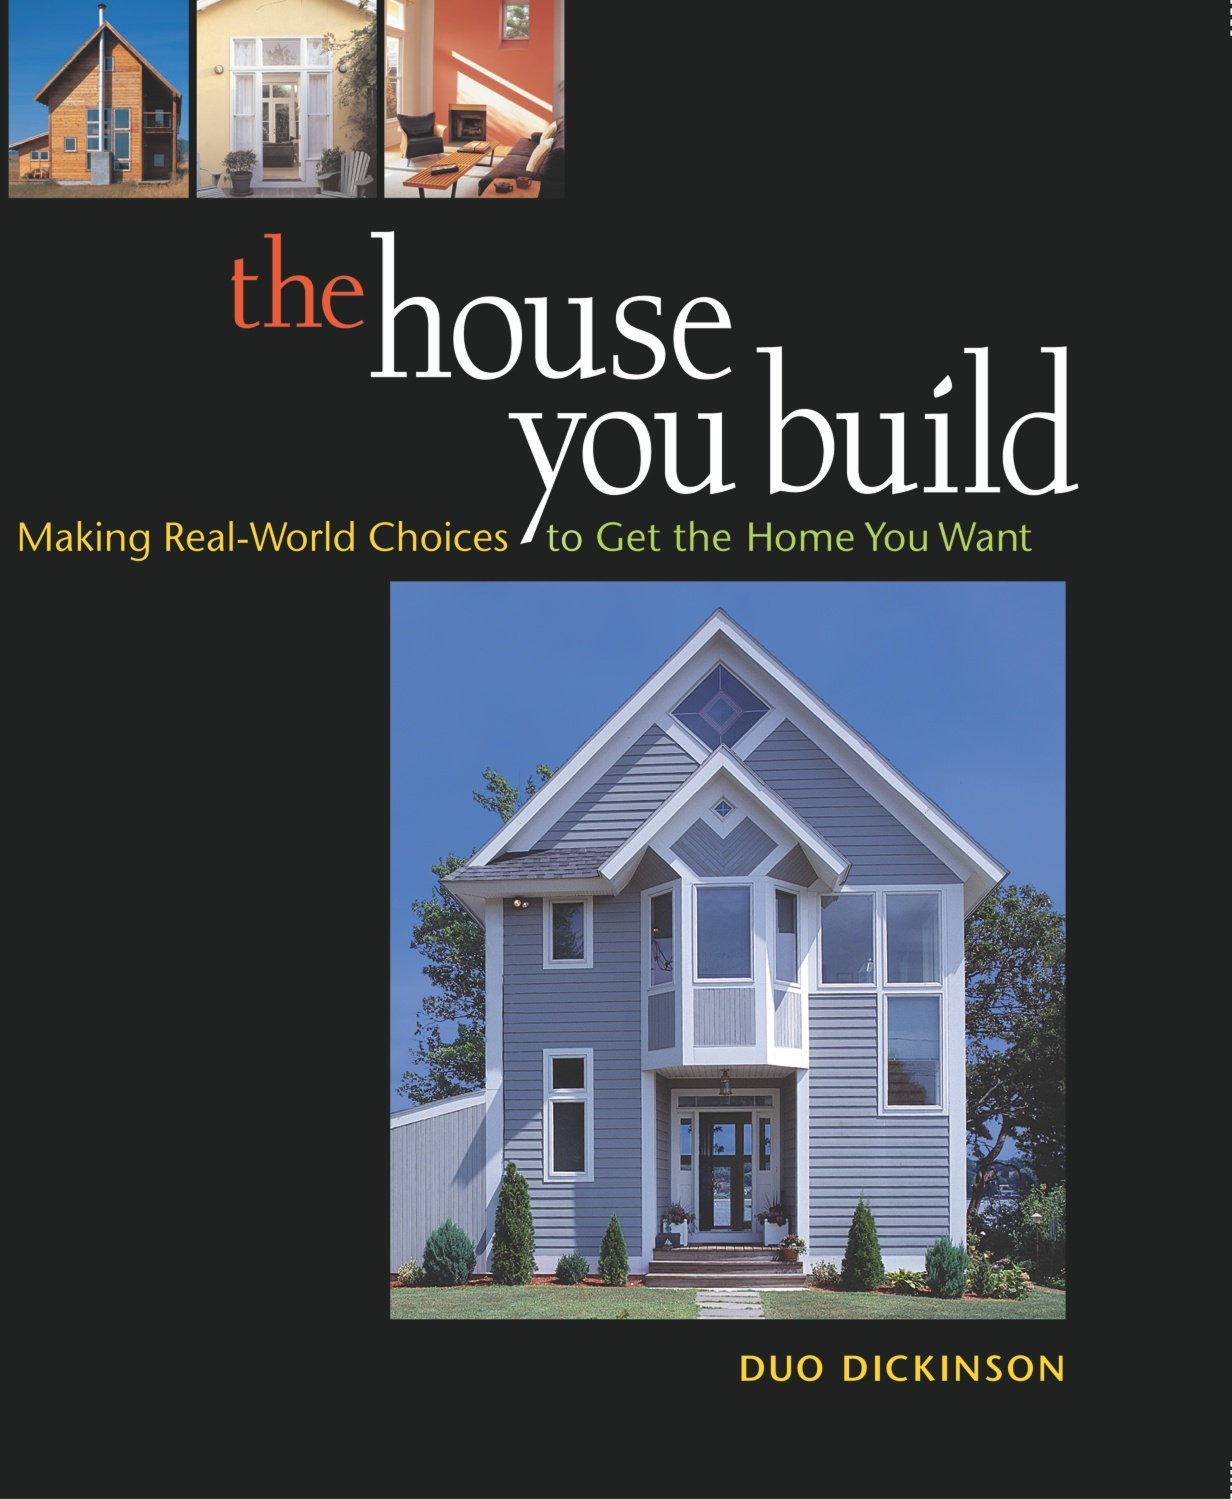 Can I Build A House for $150 000 Awesome the House You Build Making Real World Choices to Get the